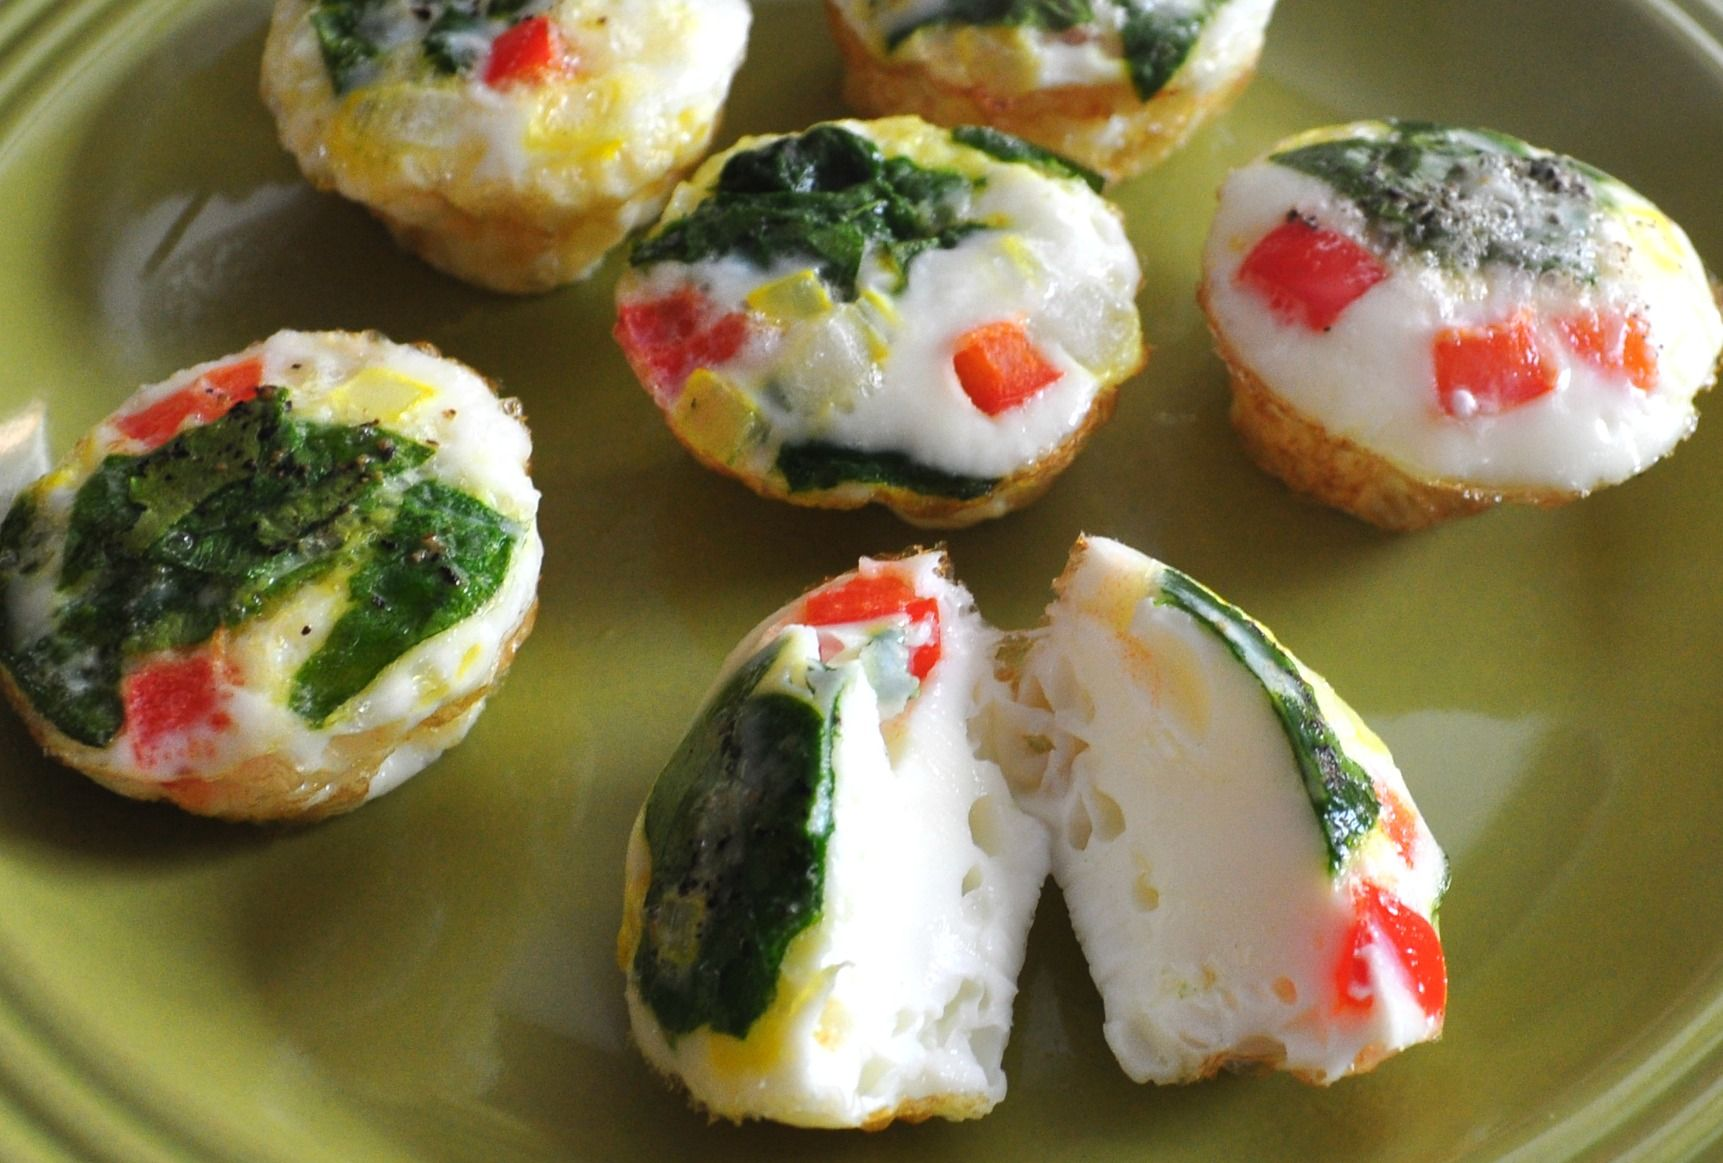 Egg White Bites Are A Healthy Breakfast Food That The Whole Family